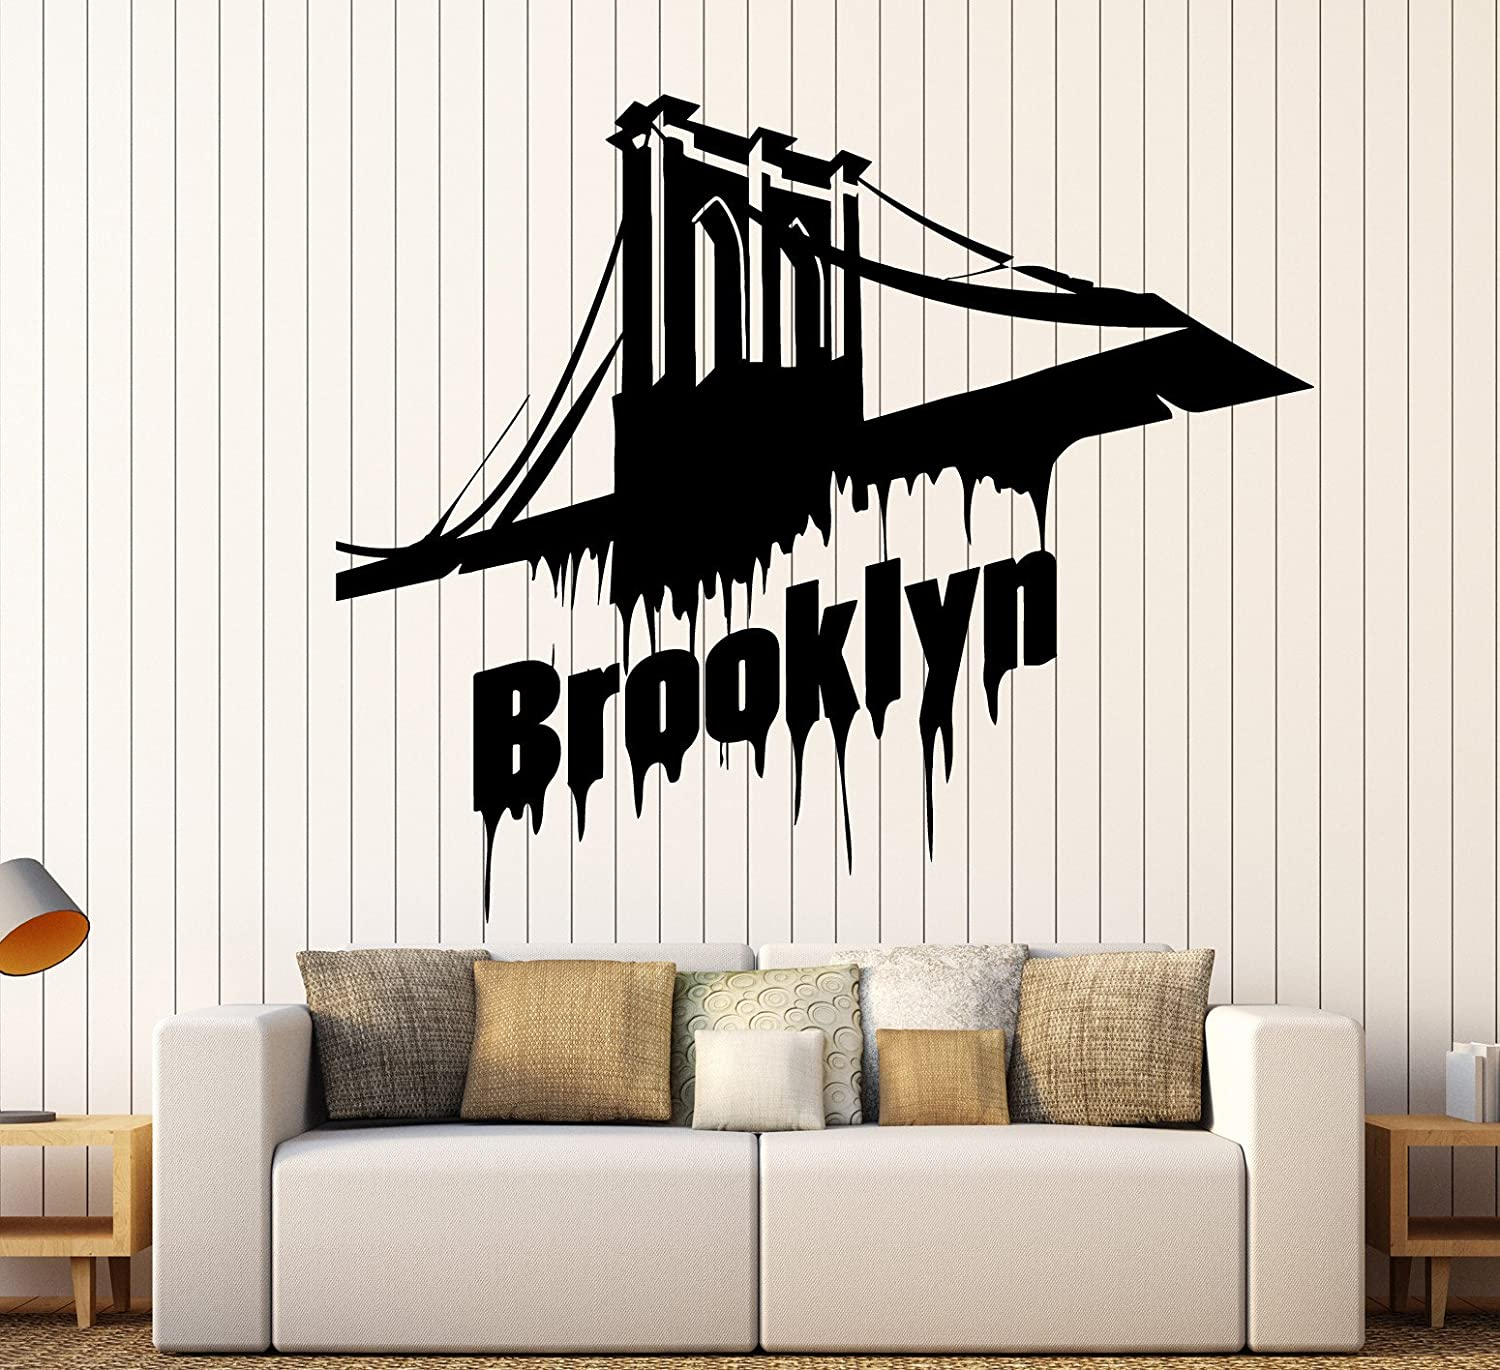 Manufacturer regenerated product Vinyl Wall Decal Brooklyn Bridge New York Large Stickers Mural D 70% OFF Outlet